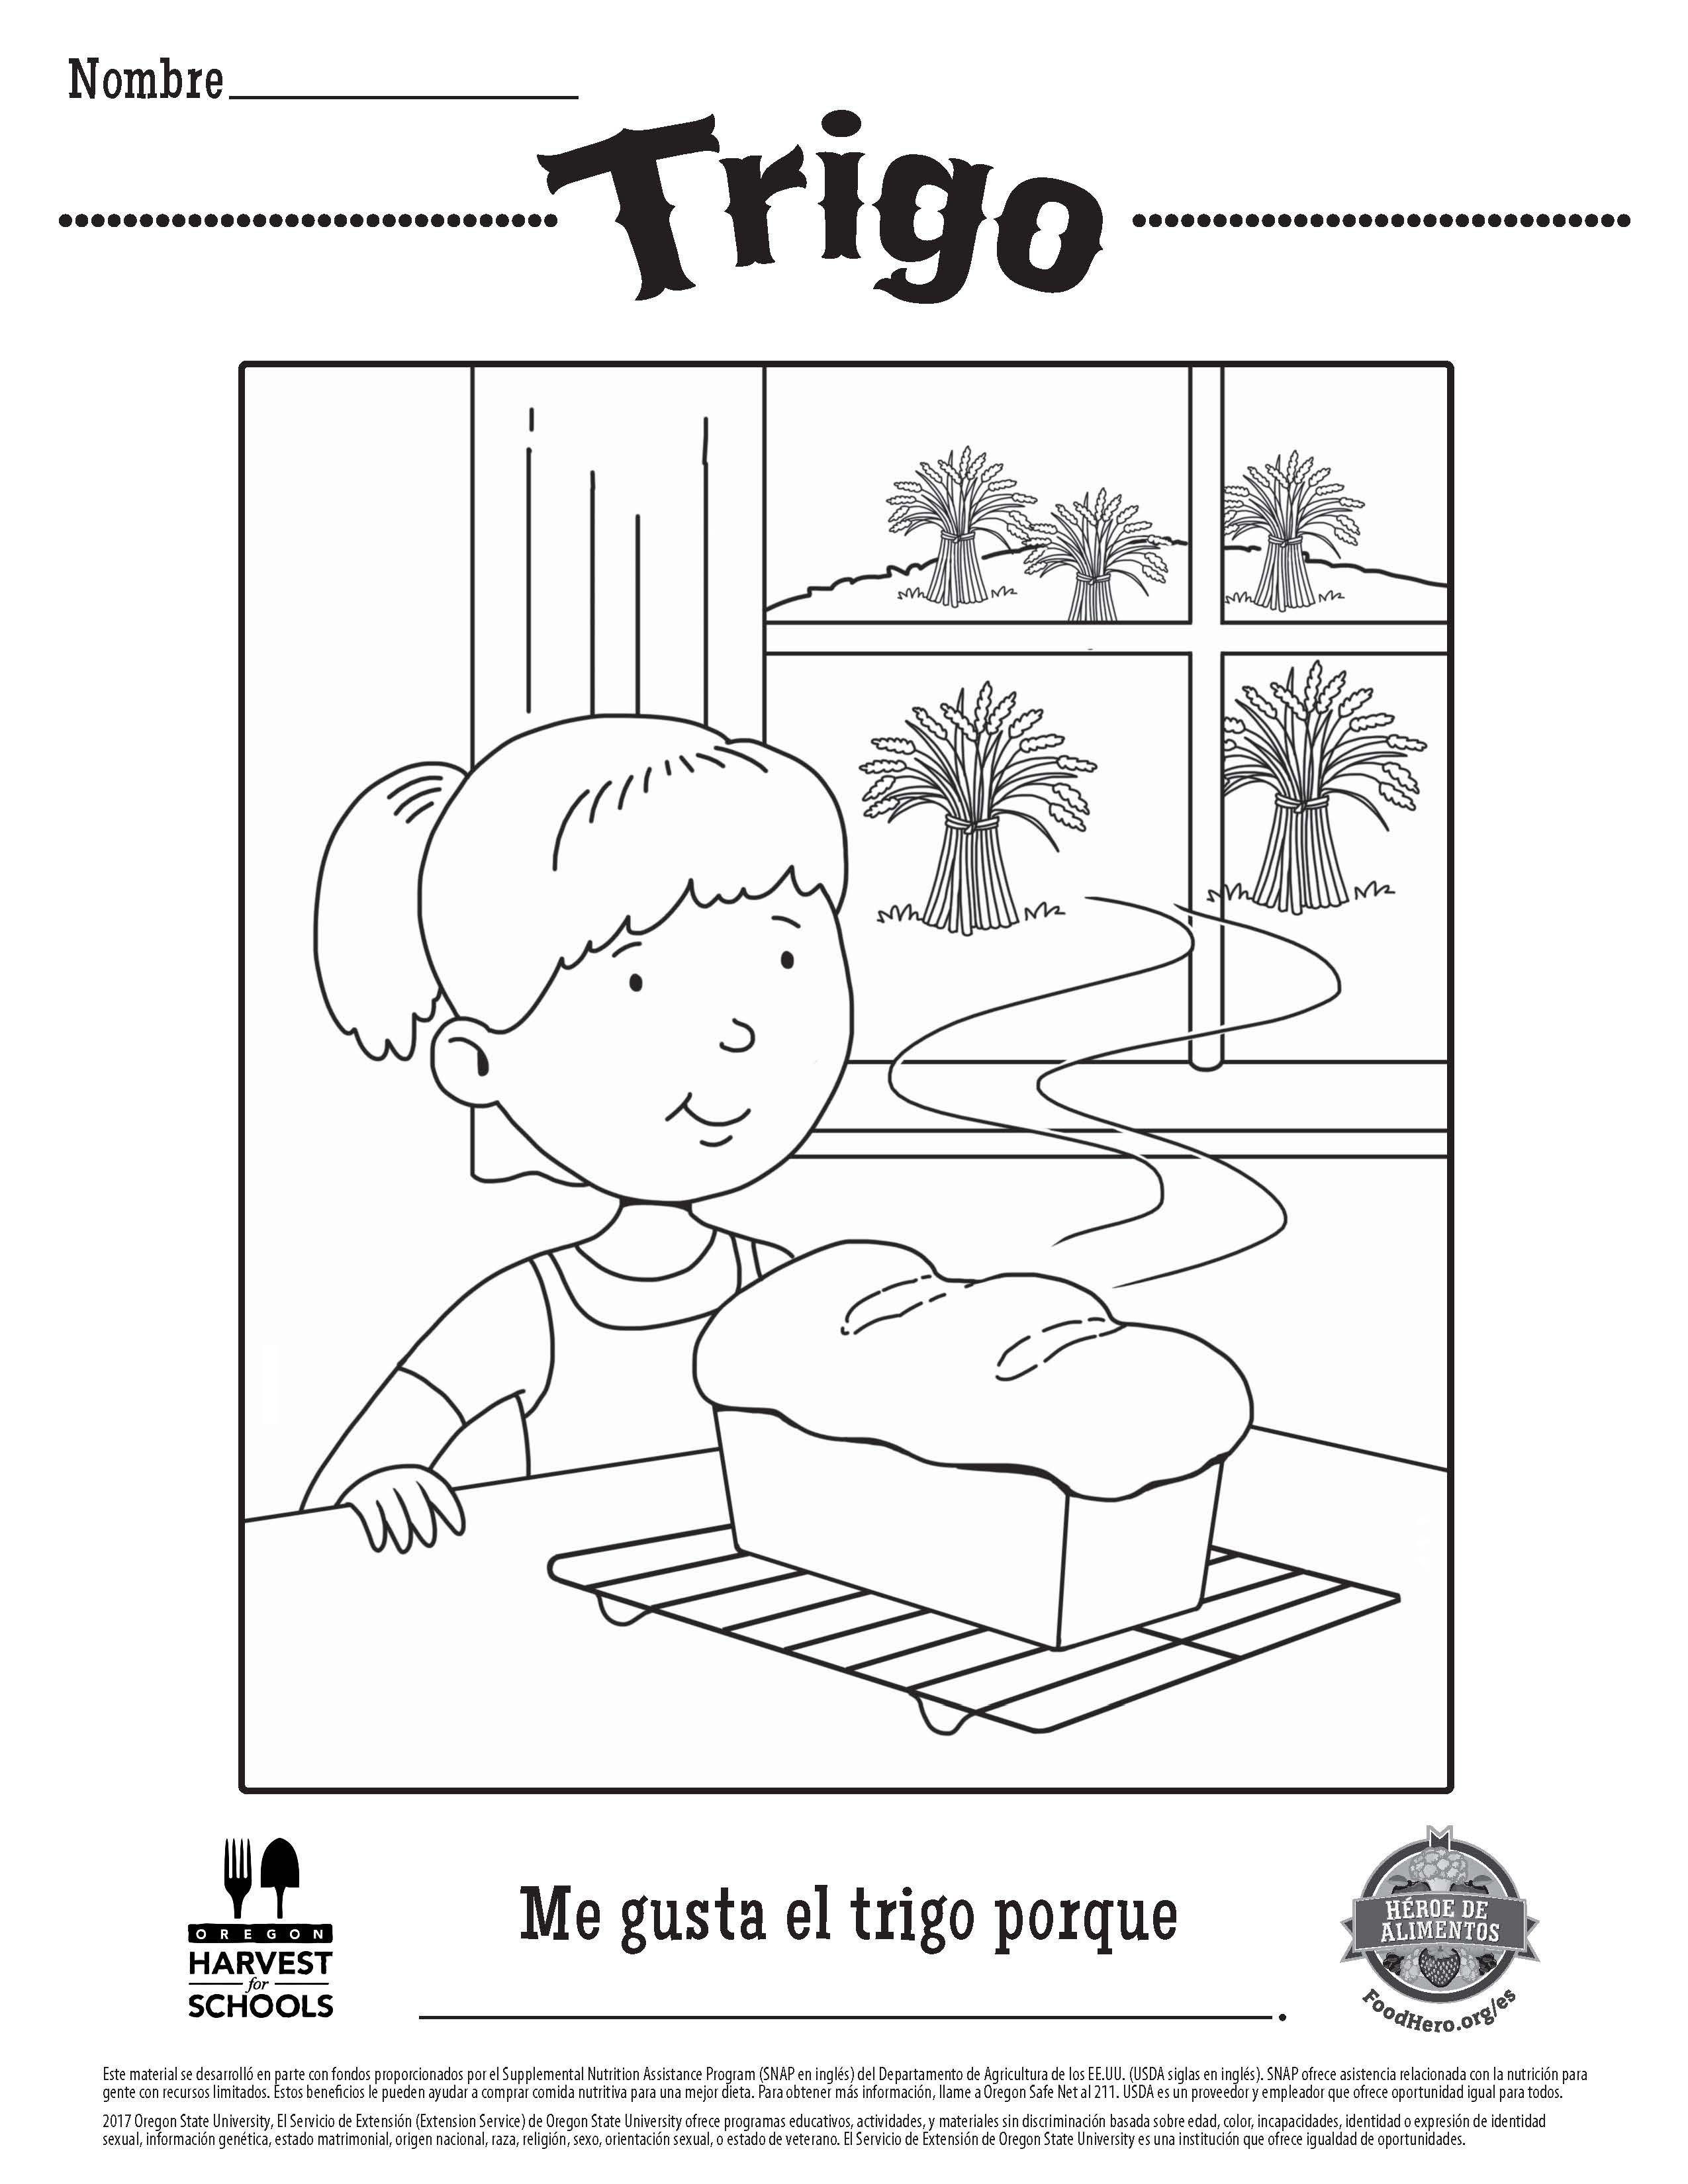 Coloring Sheets In Spanish Healthy Coloring Sheets Food Hero Coloringpage Coloring Pages Coloring Sheets Color